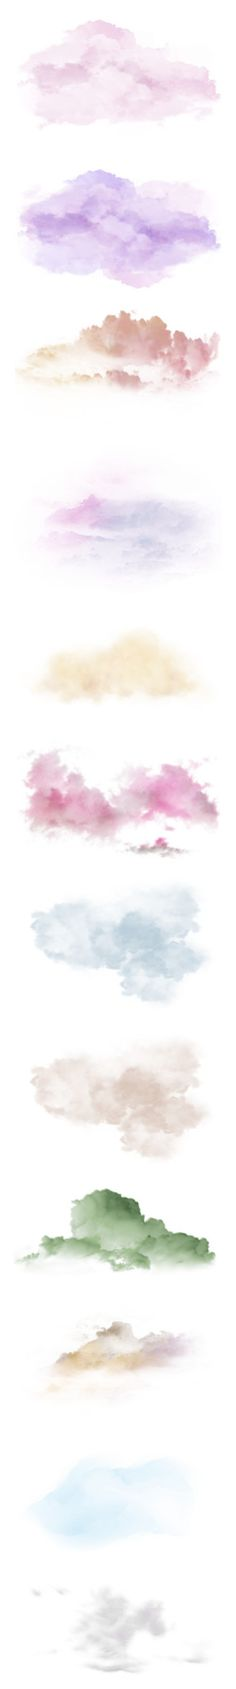 """""""Clouds Galore!"""" by almaannriver ❤ liked on Polyvore featuring clouds, sky, effects, backgrounds, decor, decoração de interior, fillers, lullabies, decoration and saying"""